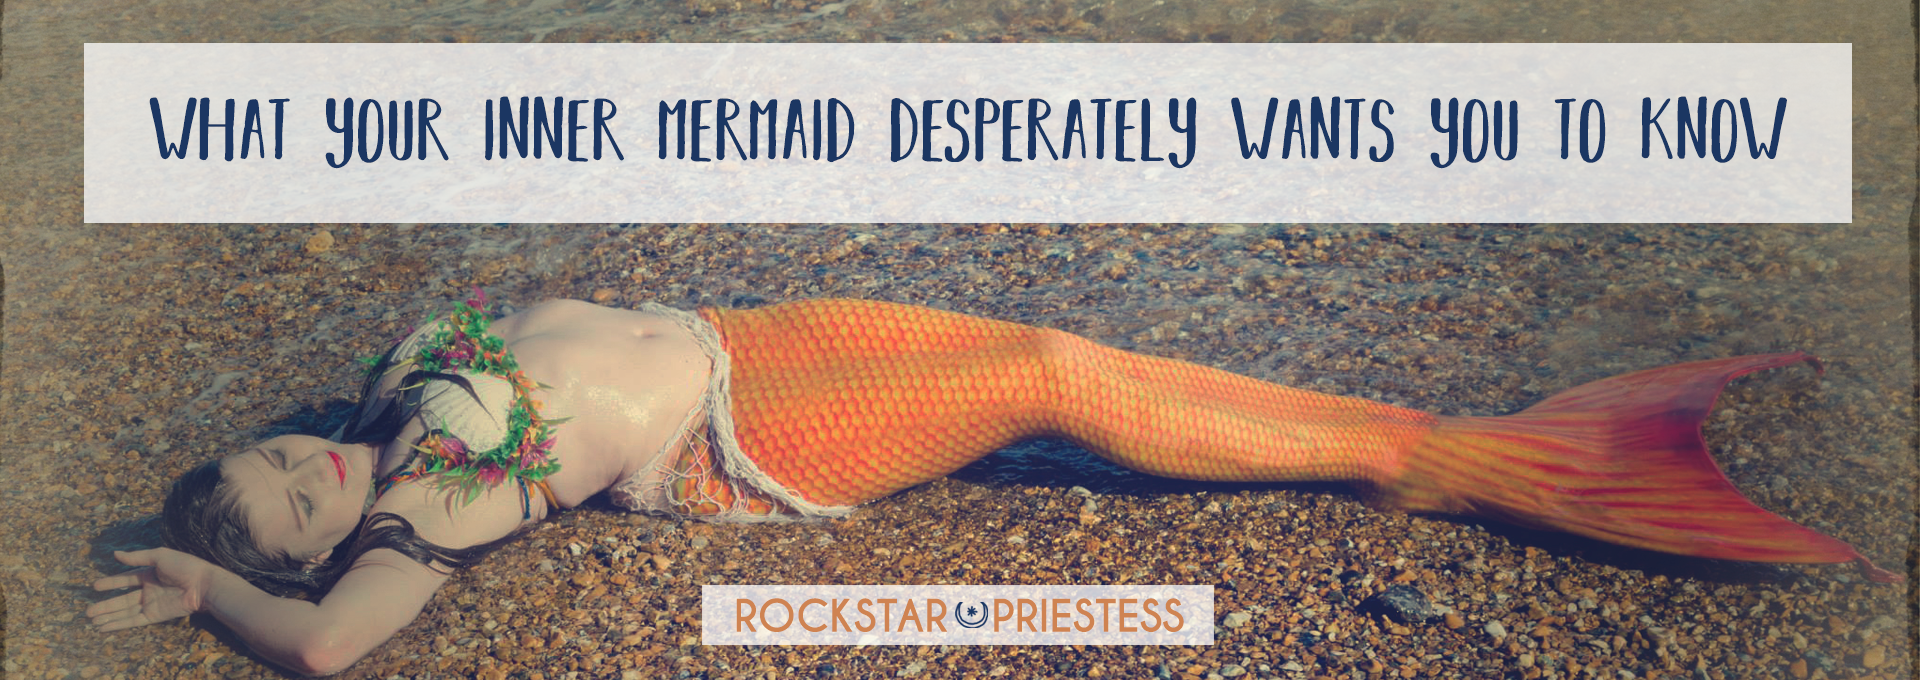 what your inner mermaid desperately wants you to know